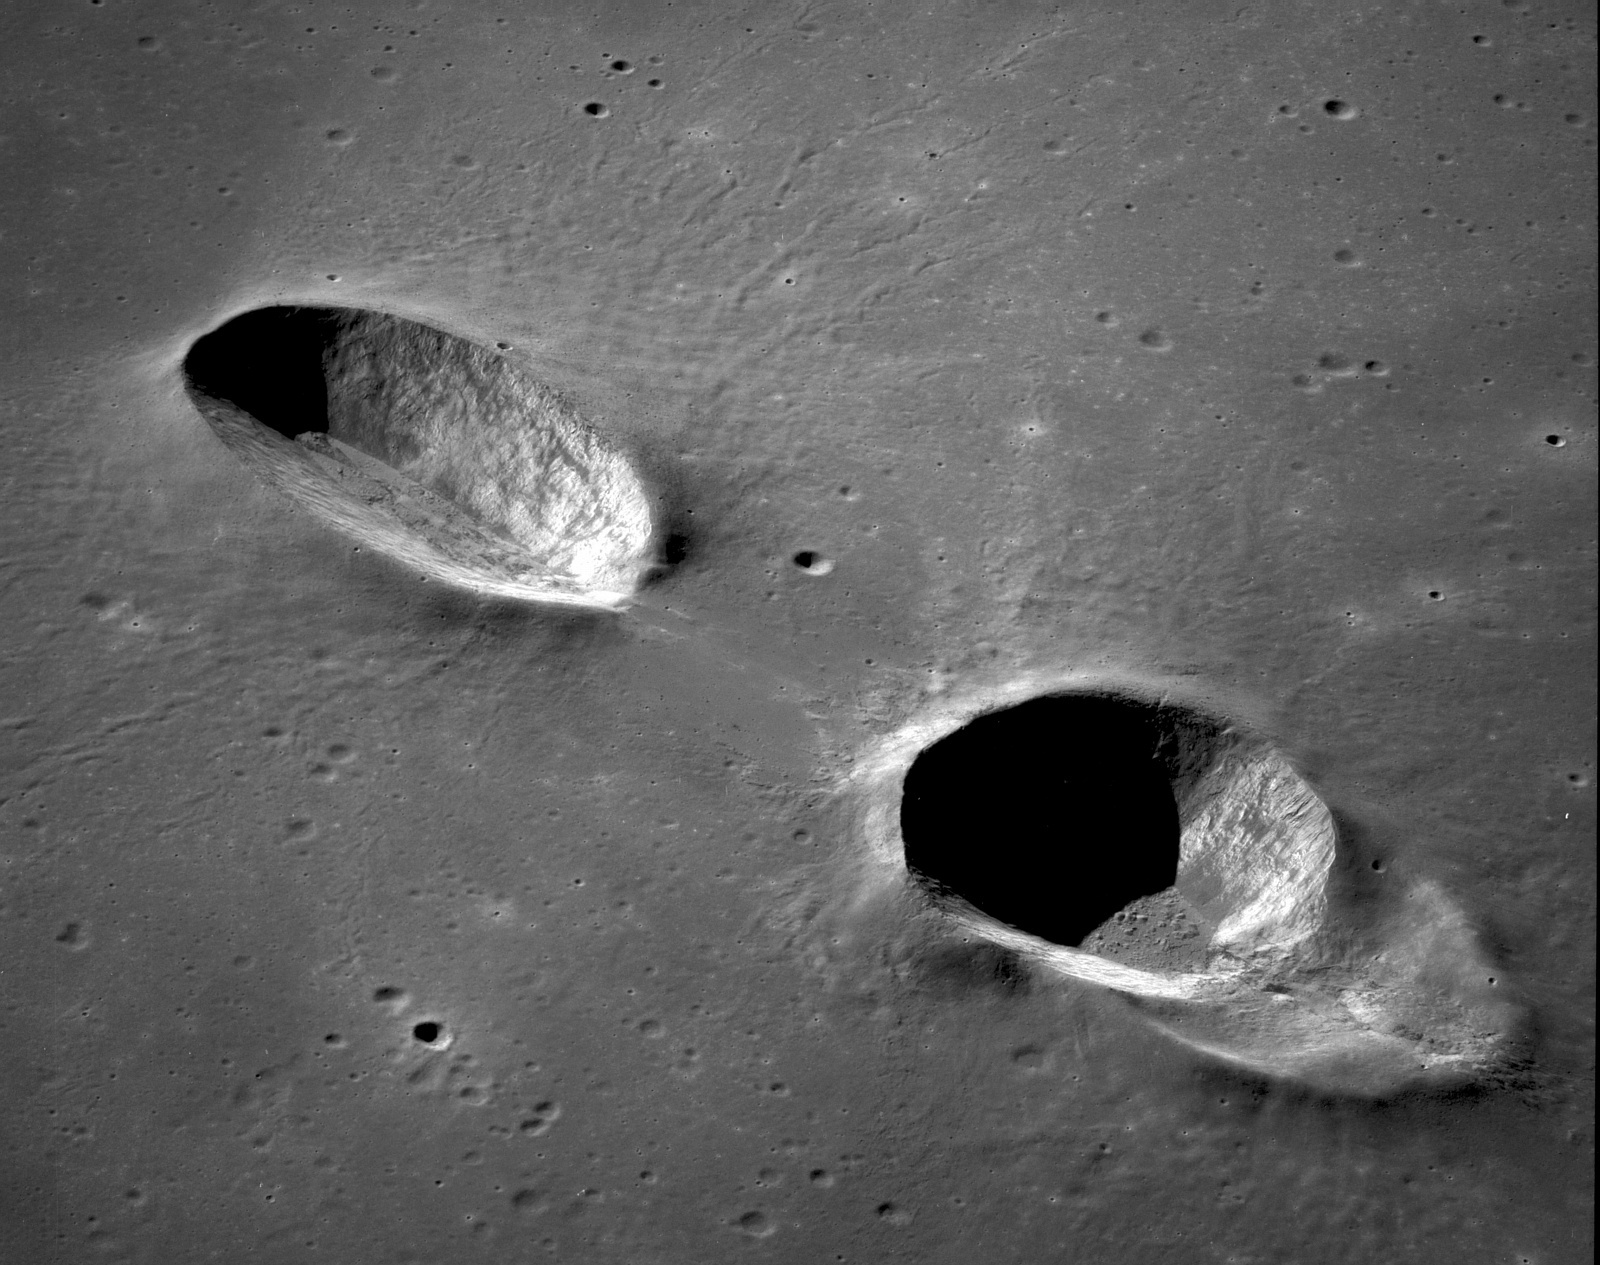 560803430_AS11-42-6305_Messier_and_Messier_A_craters_Moon.jpg.e21f634c3d63e91bba2a9351ae73df51.jpg